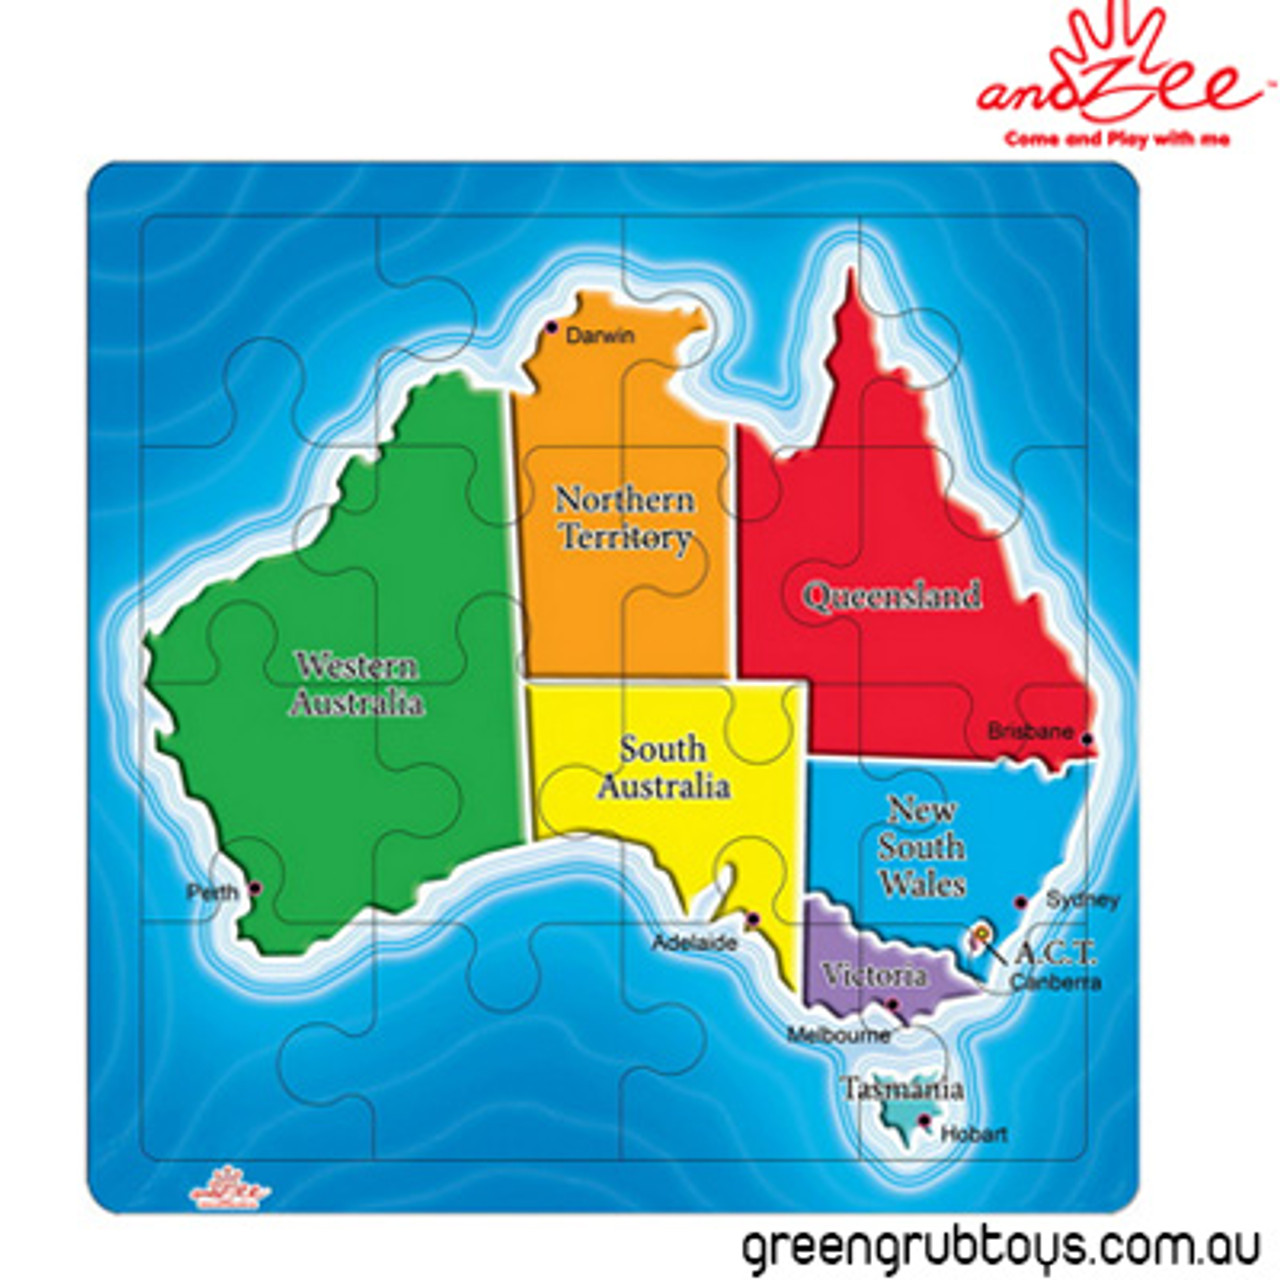 Australia On A Map.Andzee Australiana Wooden Jigsaw Puzzle Map Of Australian States 16pc